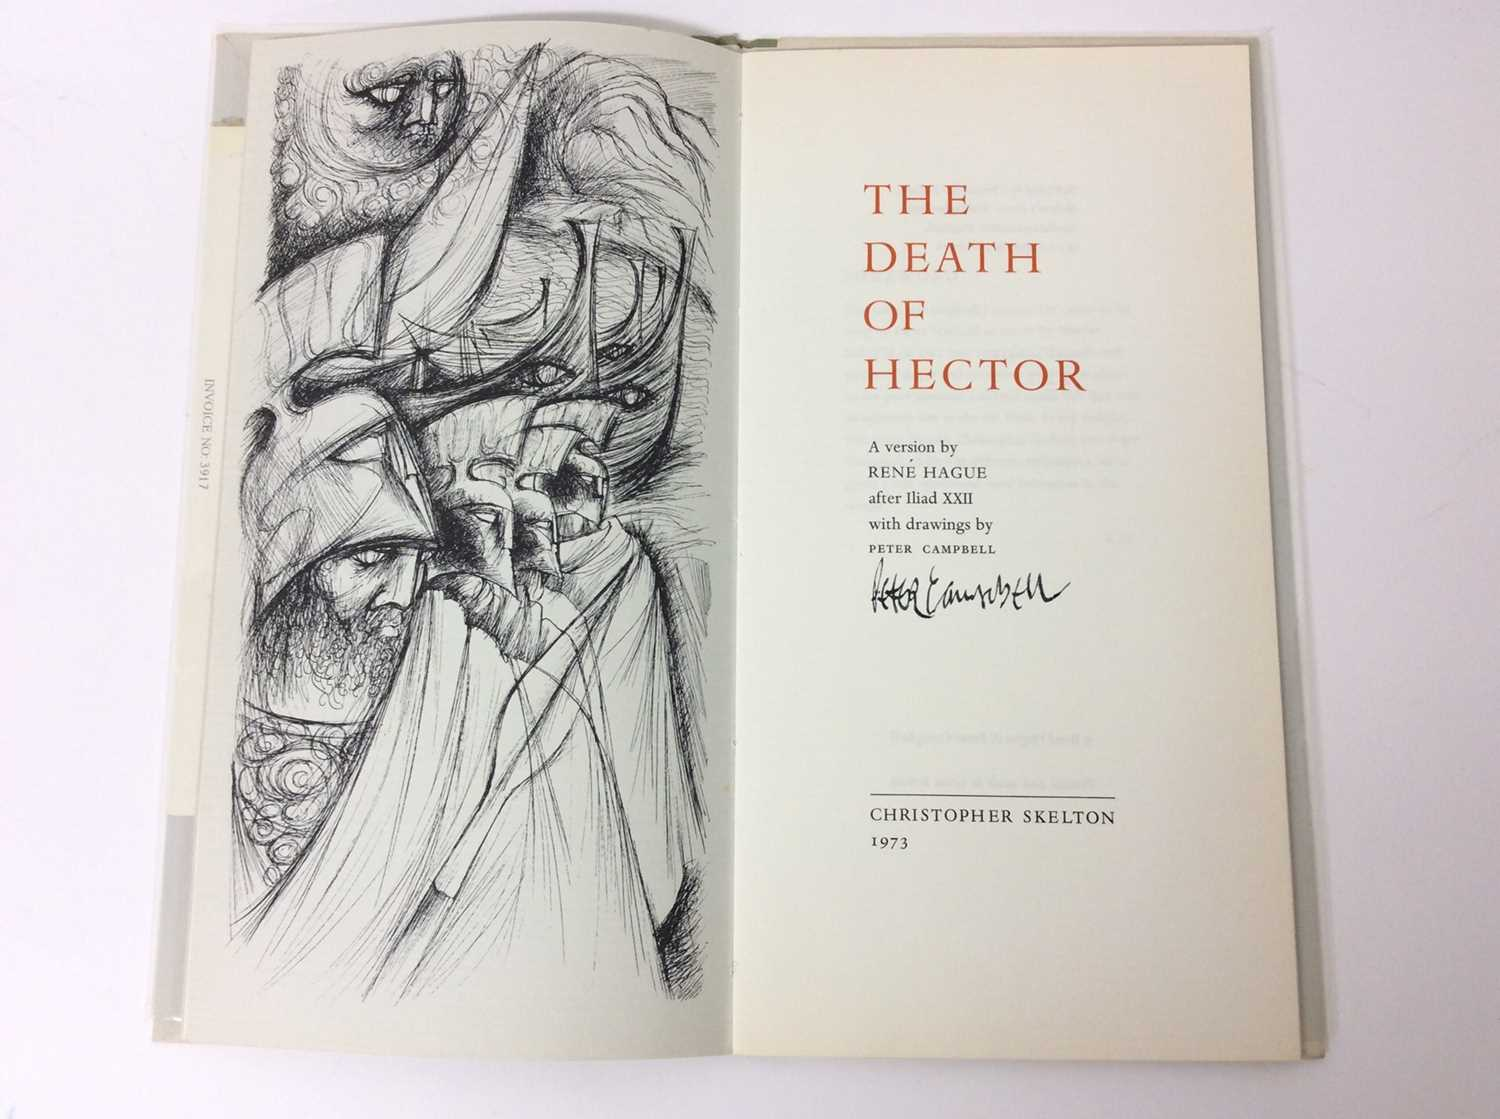 John Gray - Edward Walters, printer and engraver, together with The death of Hector - Image 7 of 10